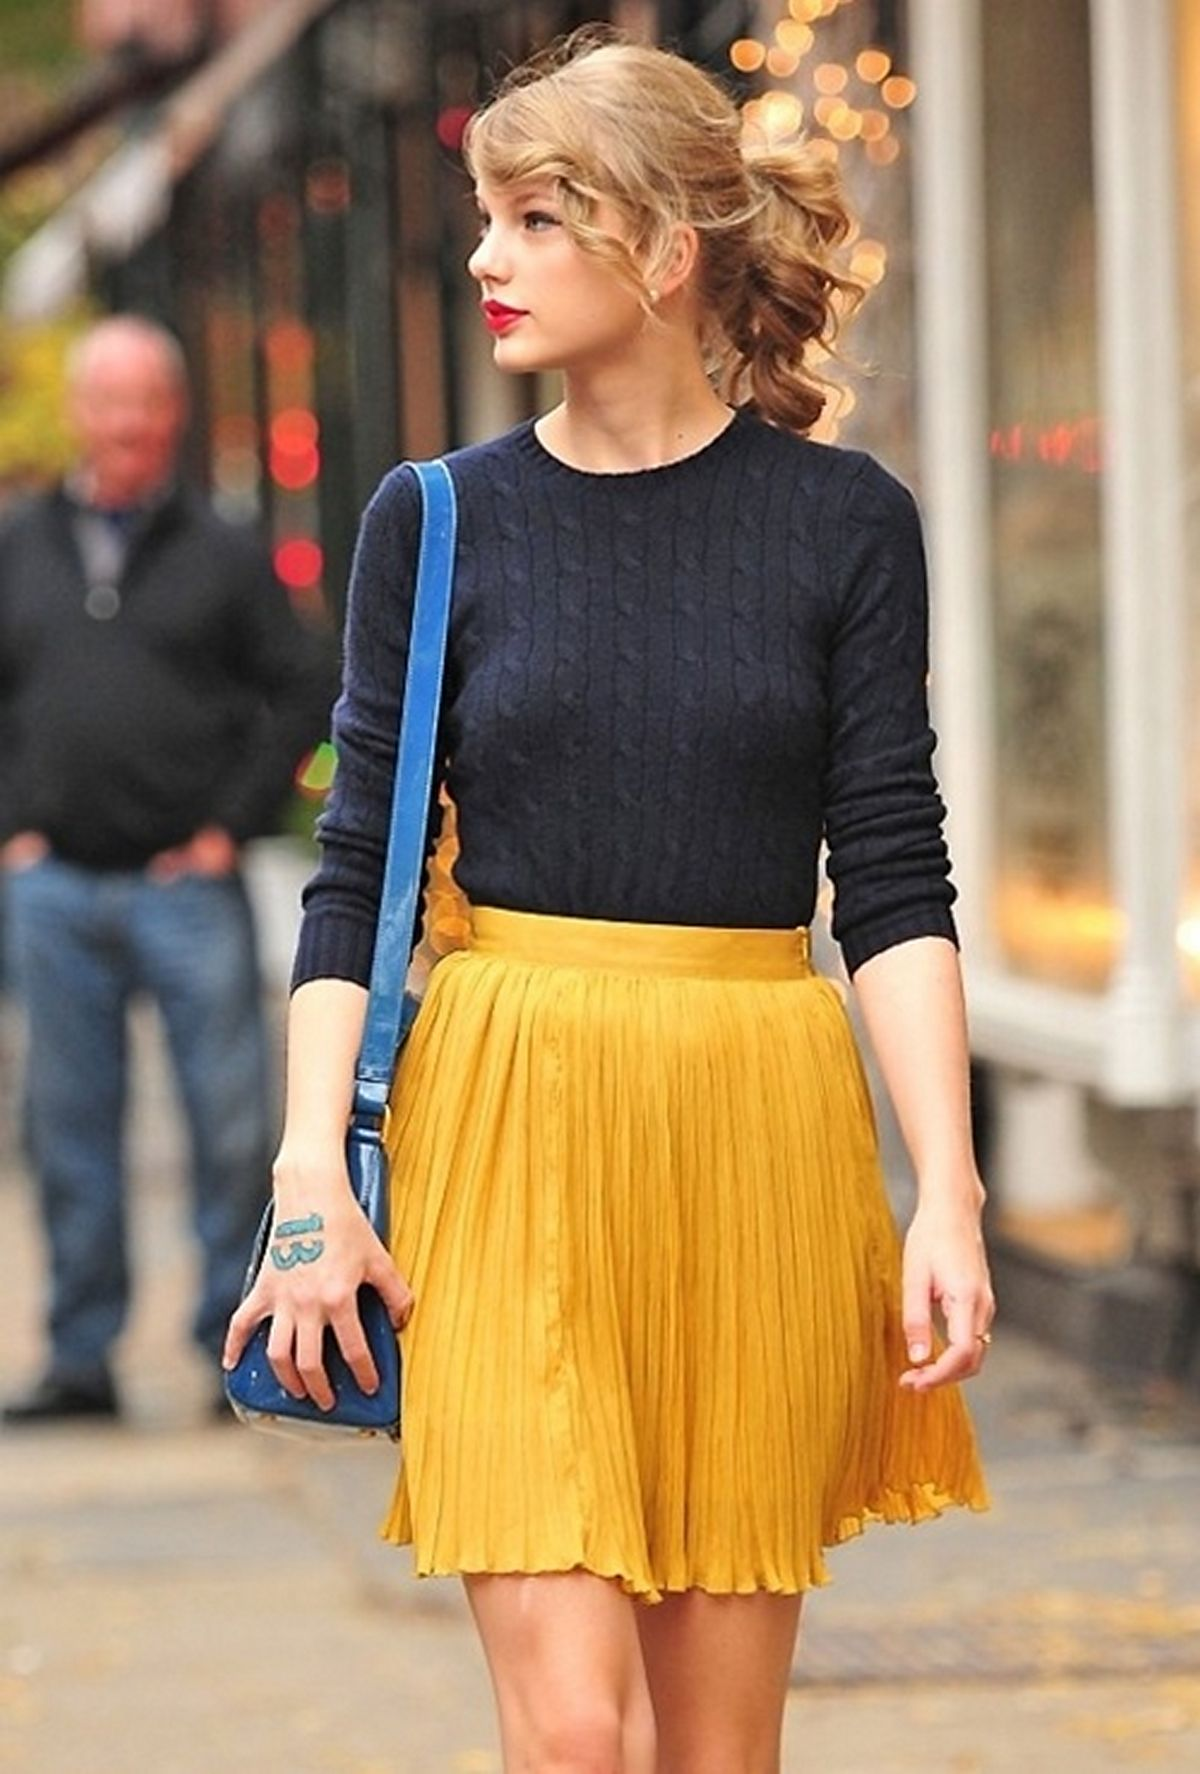 Taylor swift's most epic fashion moments 05